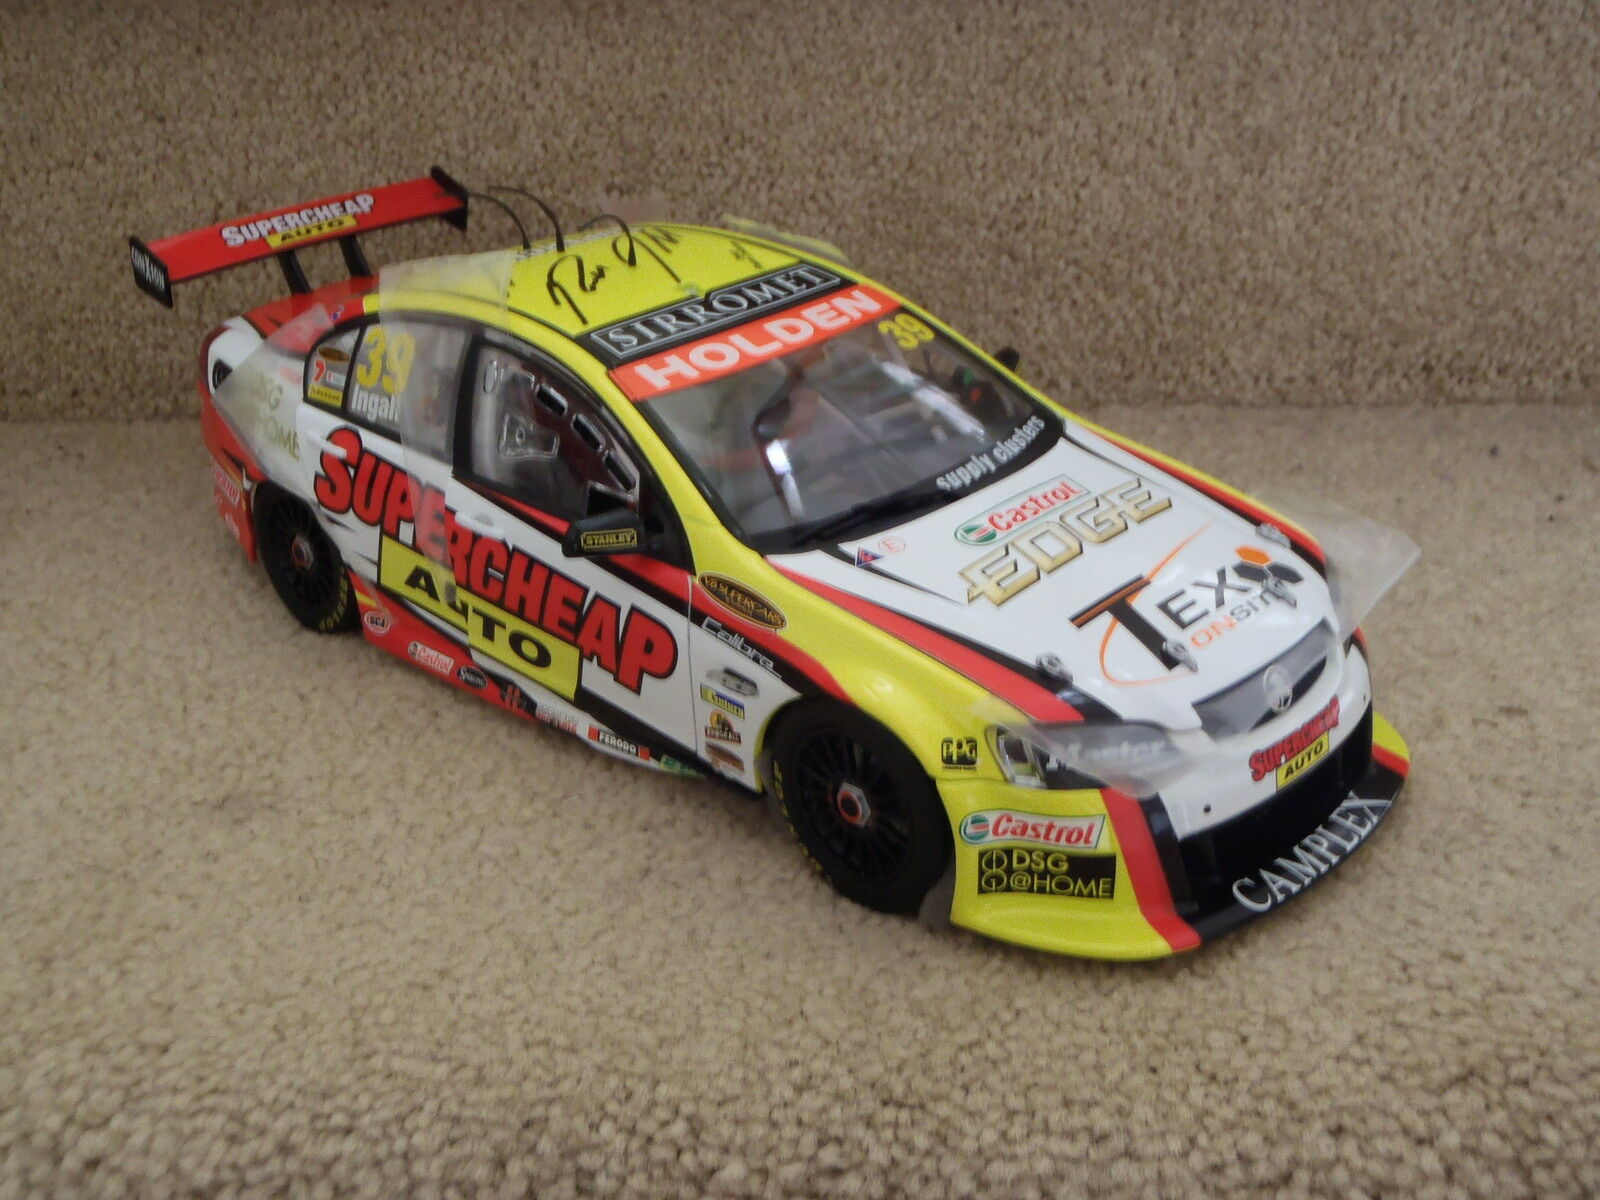 NEW SIGNED RUSSELL INGALL 2009 SUPERCHEAP RACING VE COMMODORE 1 18 CLASSIC CAR